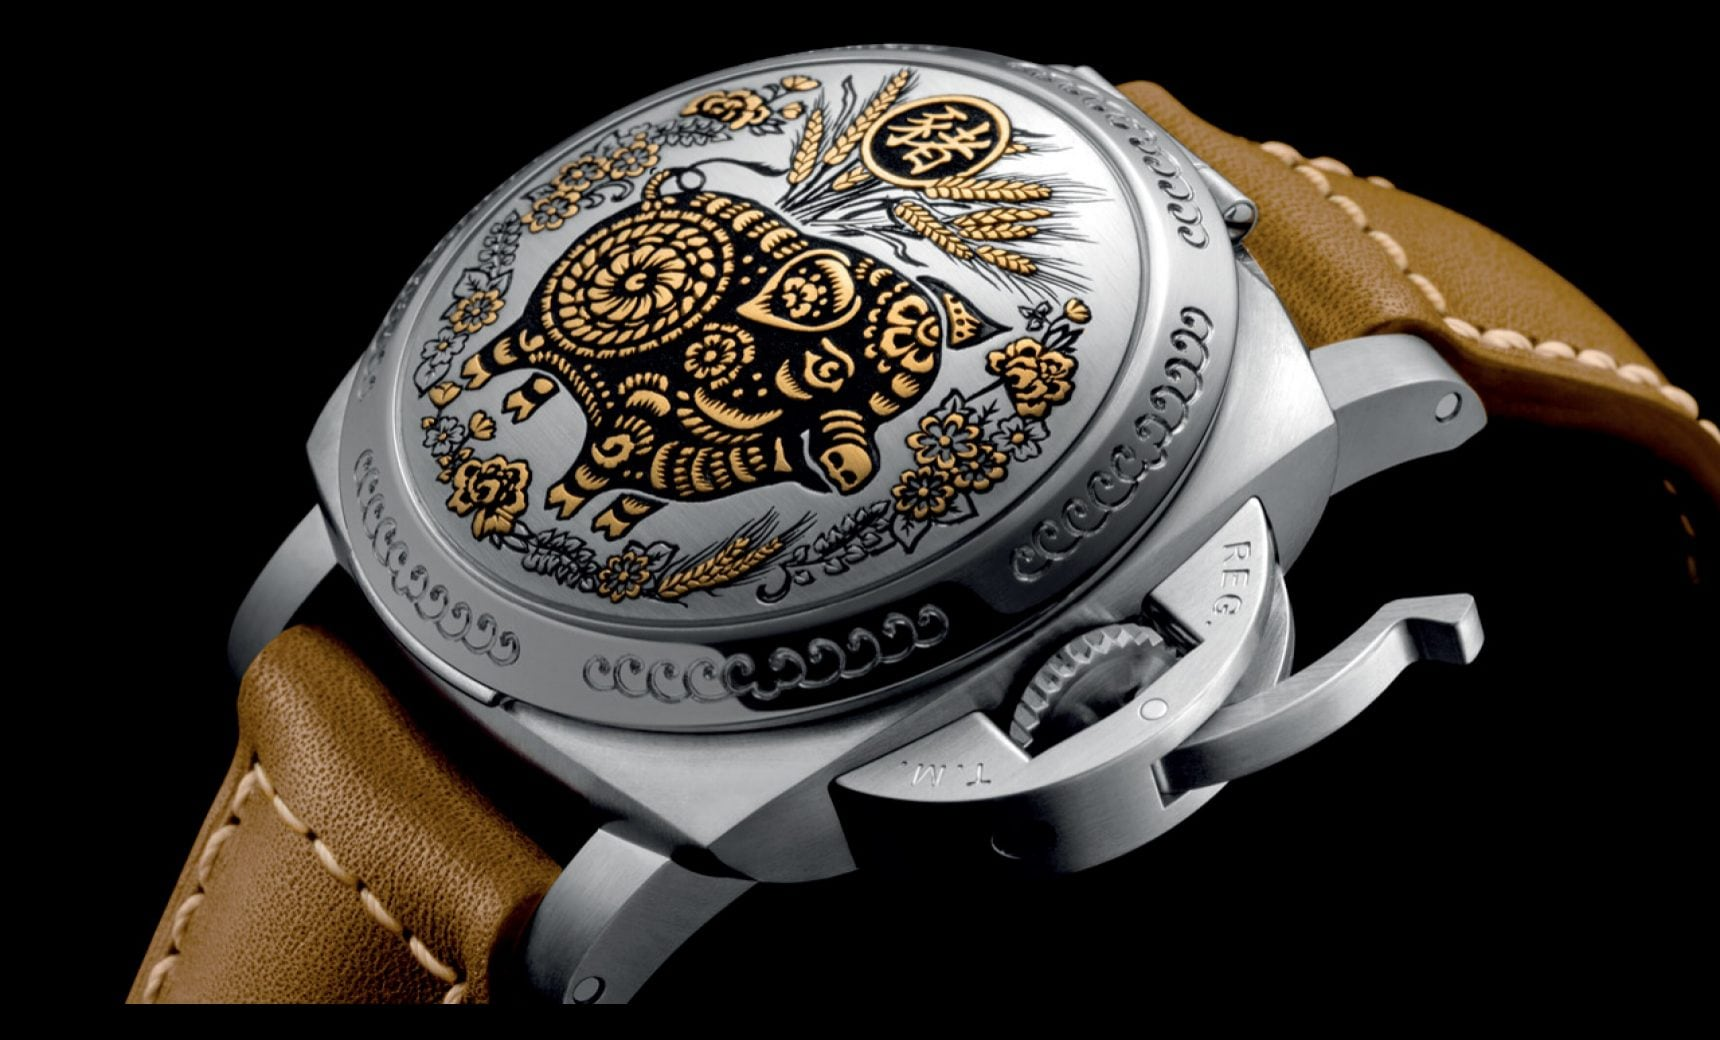 PANERAI CELEBRATE THE YEAR OF THE PIG WITH LUMINOR SEALAND